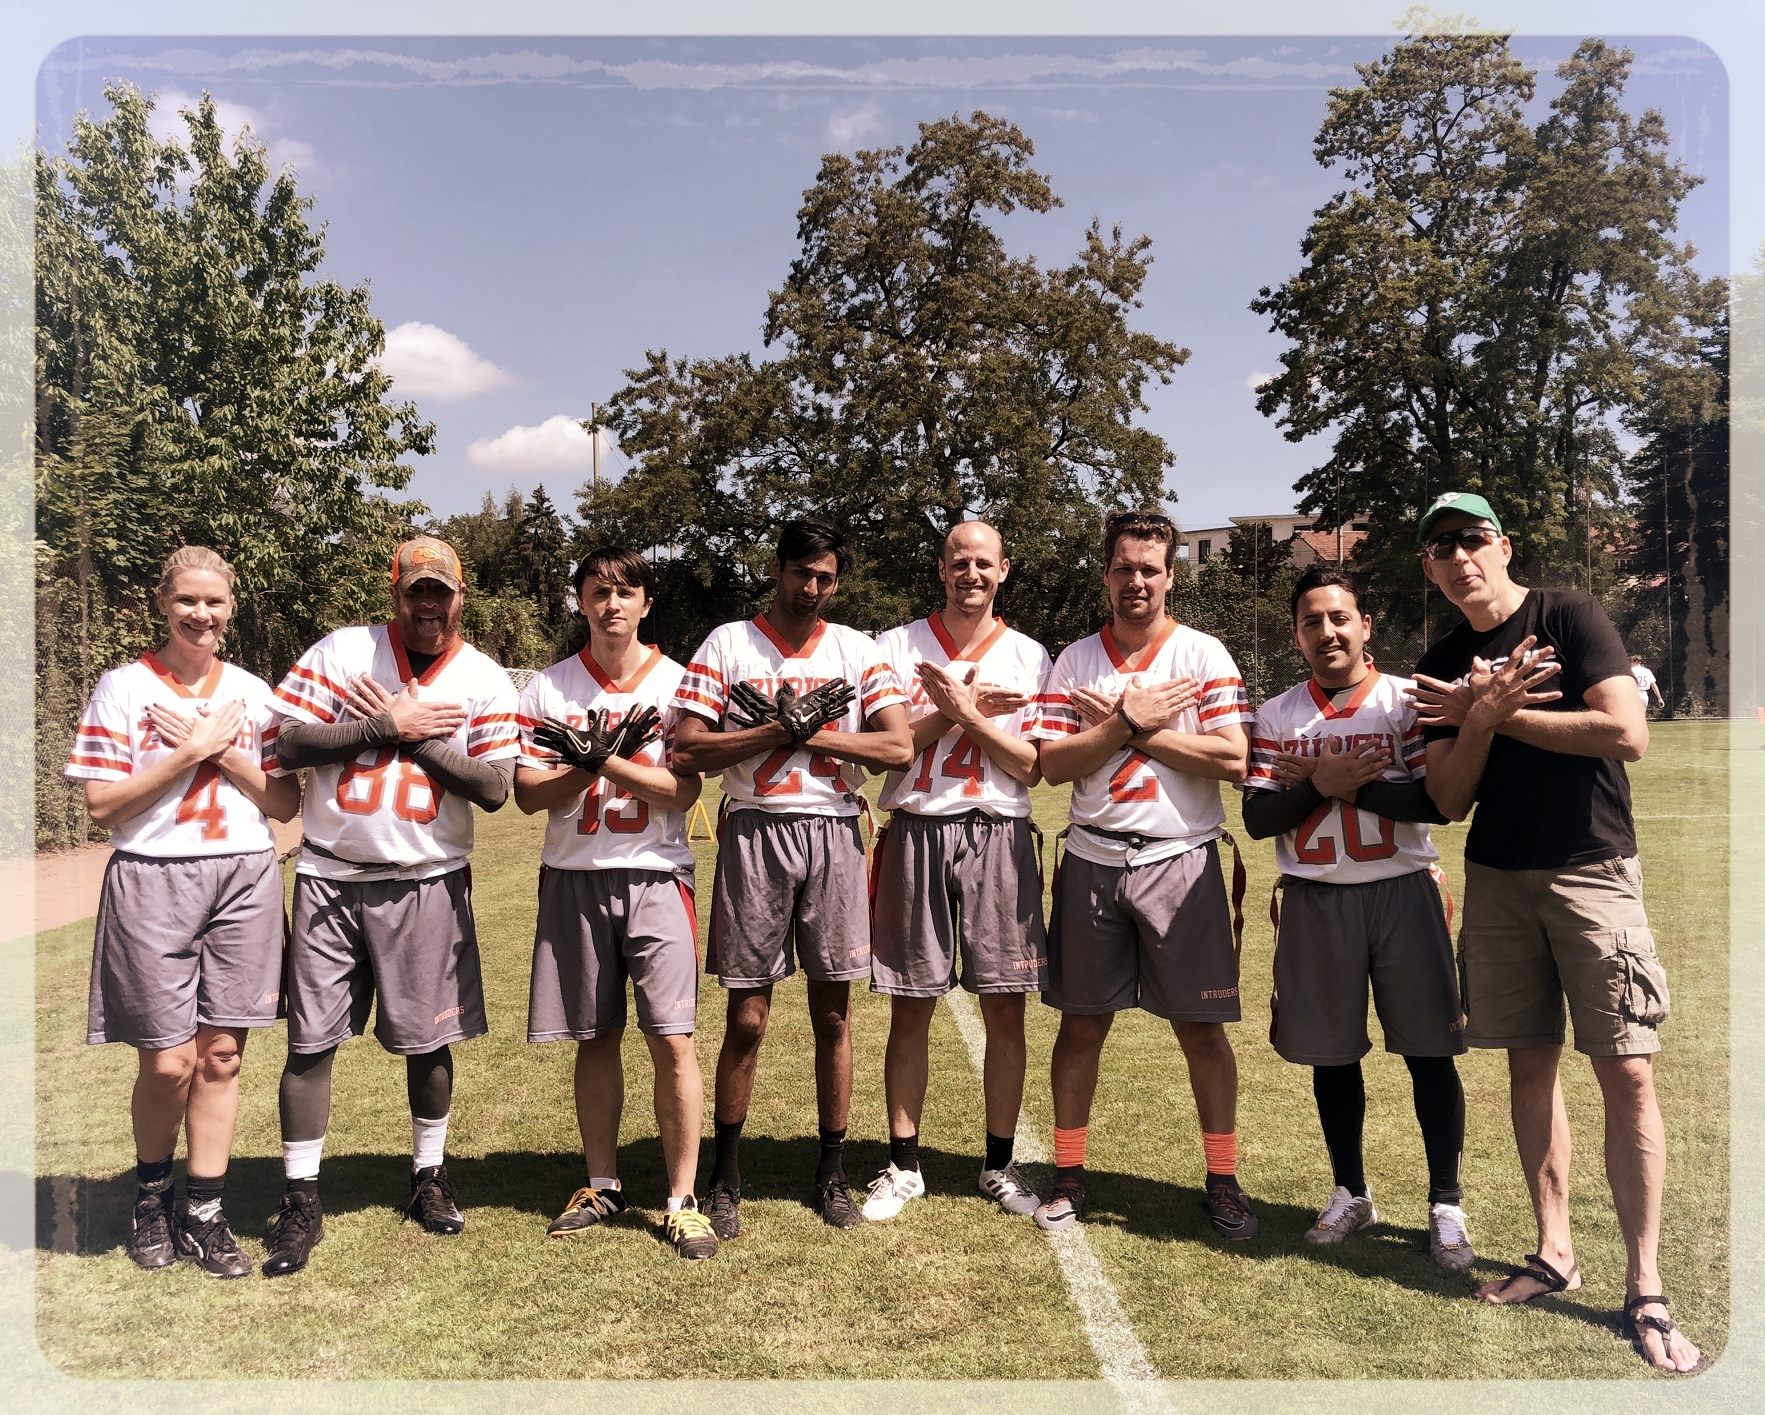 Your 2018 Intruders (at least some of them), June 23, 2018 in St. Gallen.